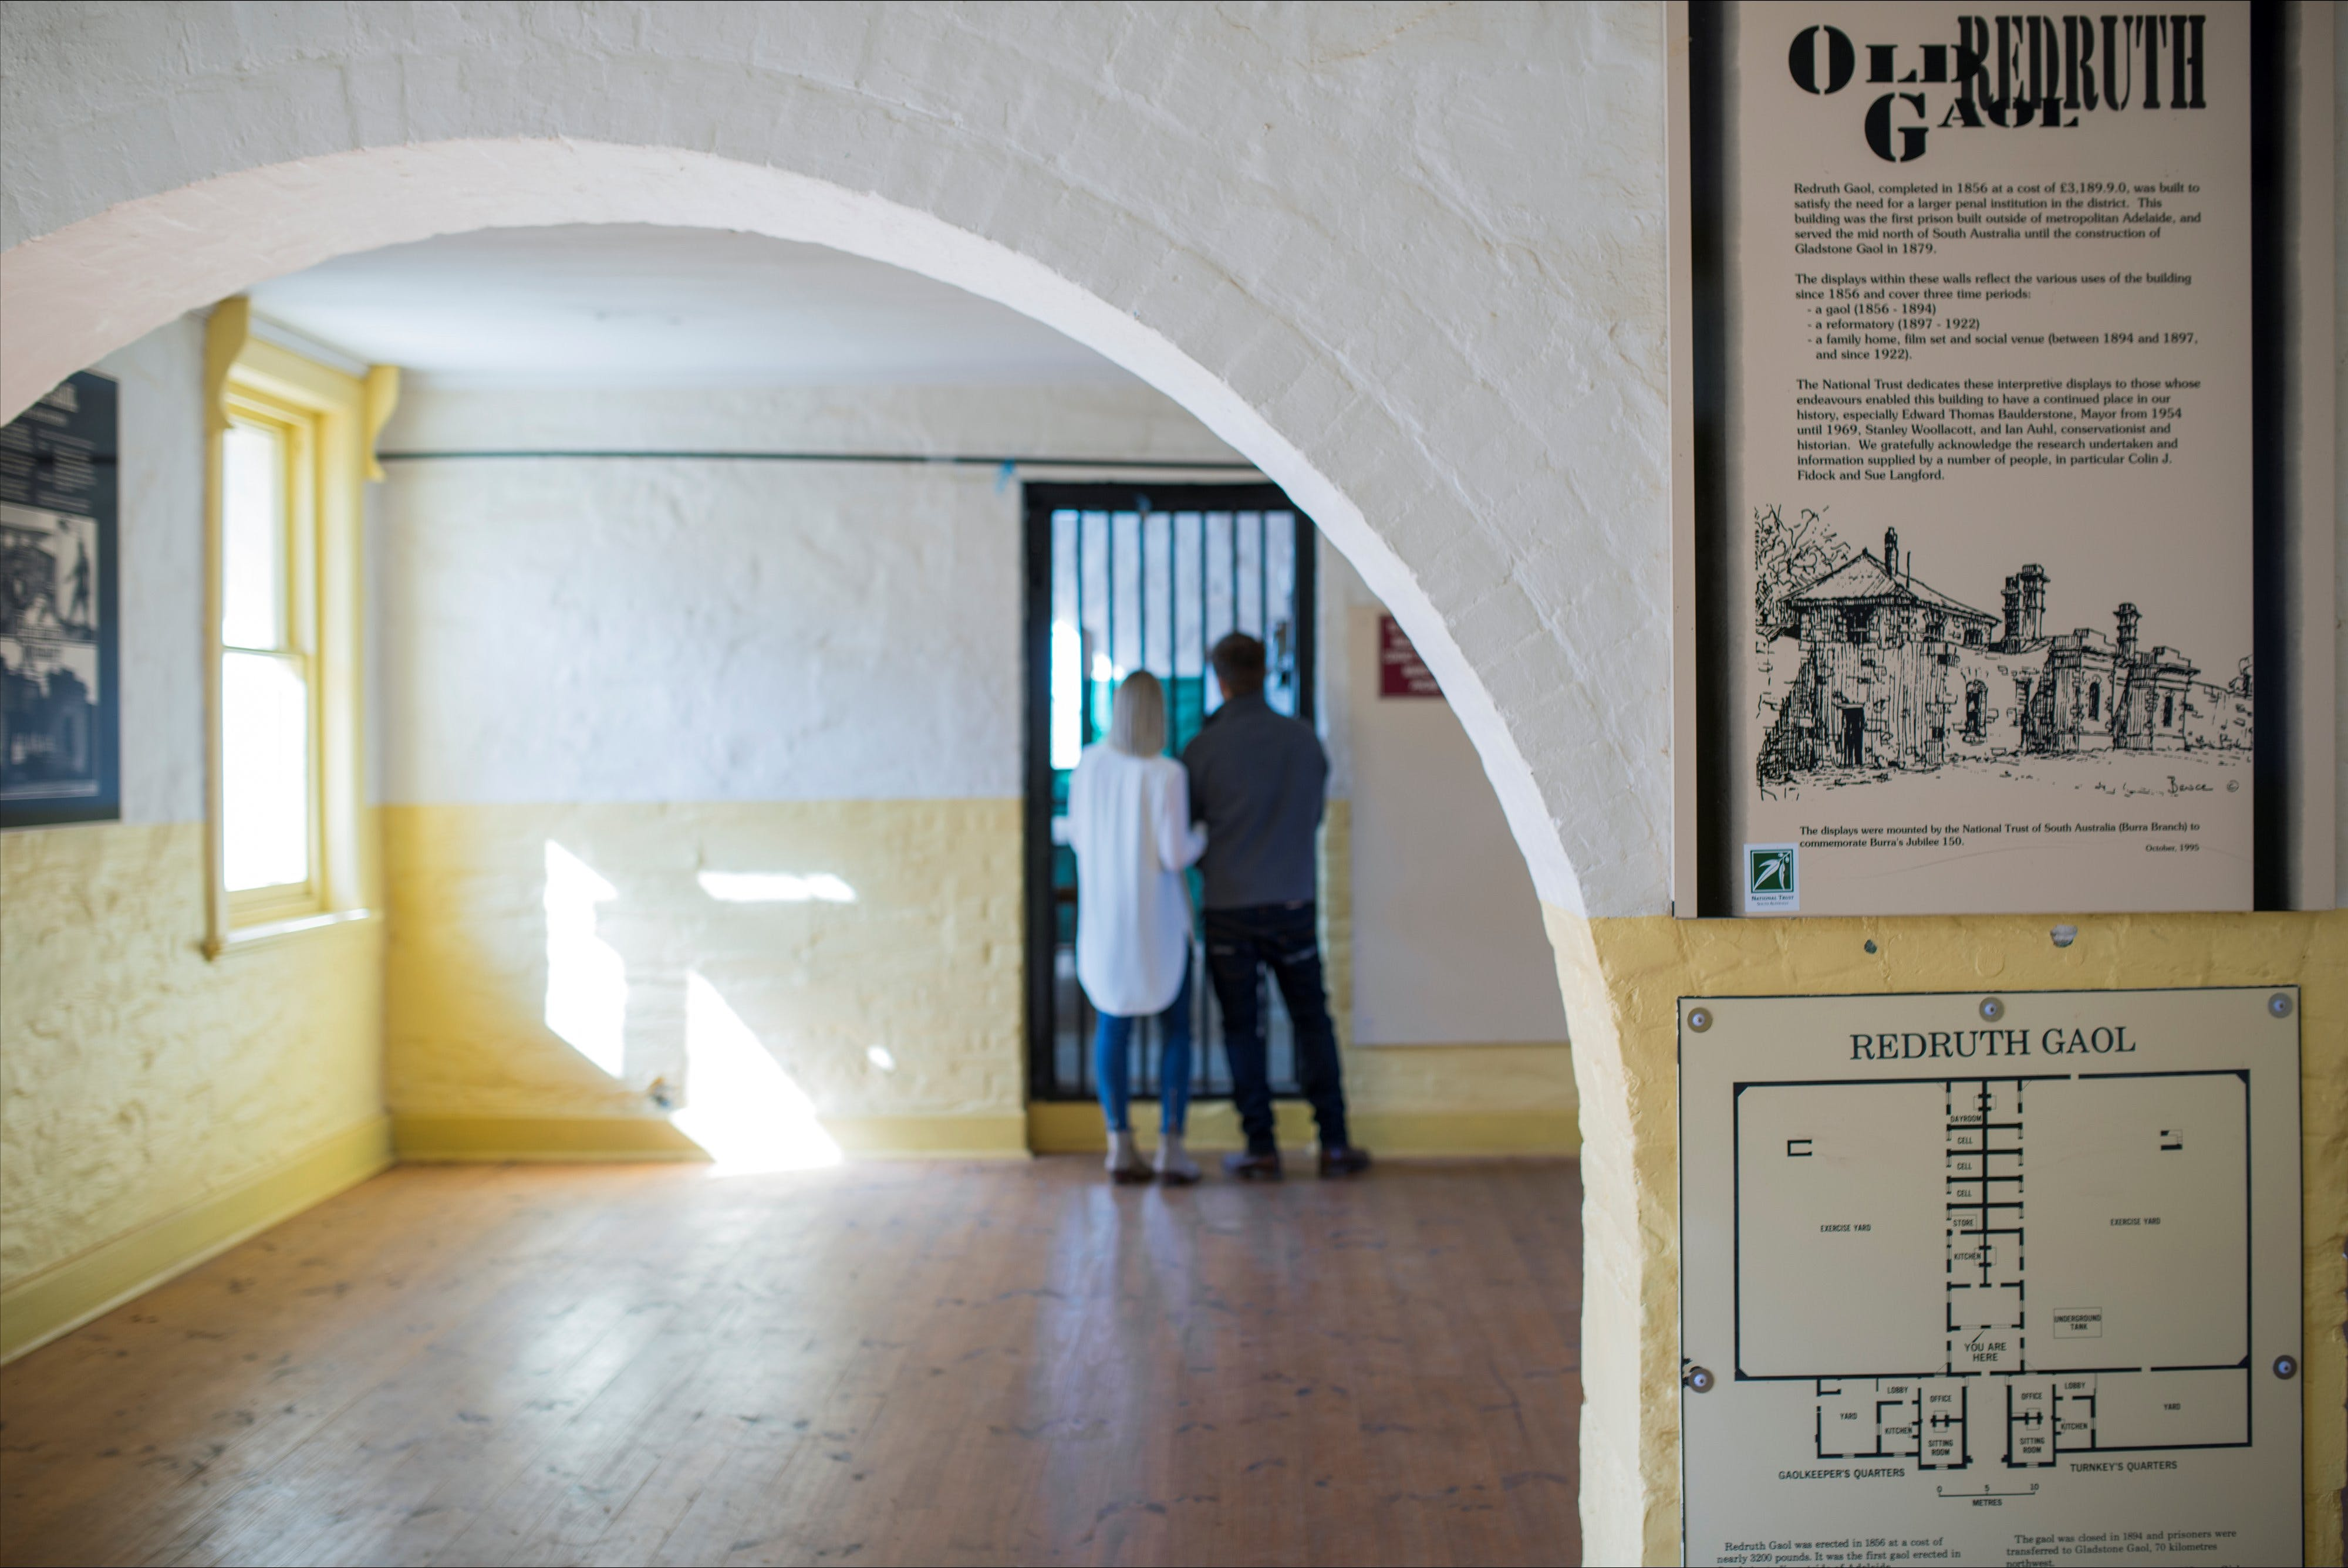 Redruth Gaol - Geraldton Accommodation